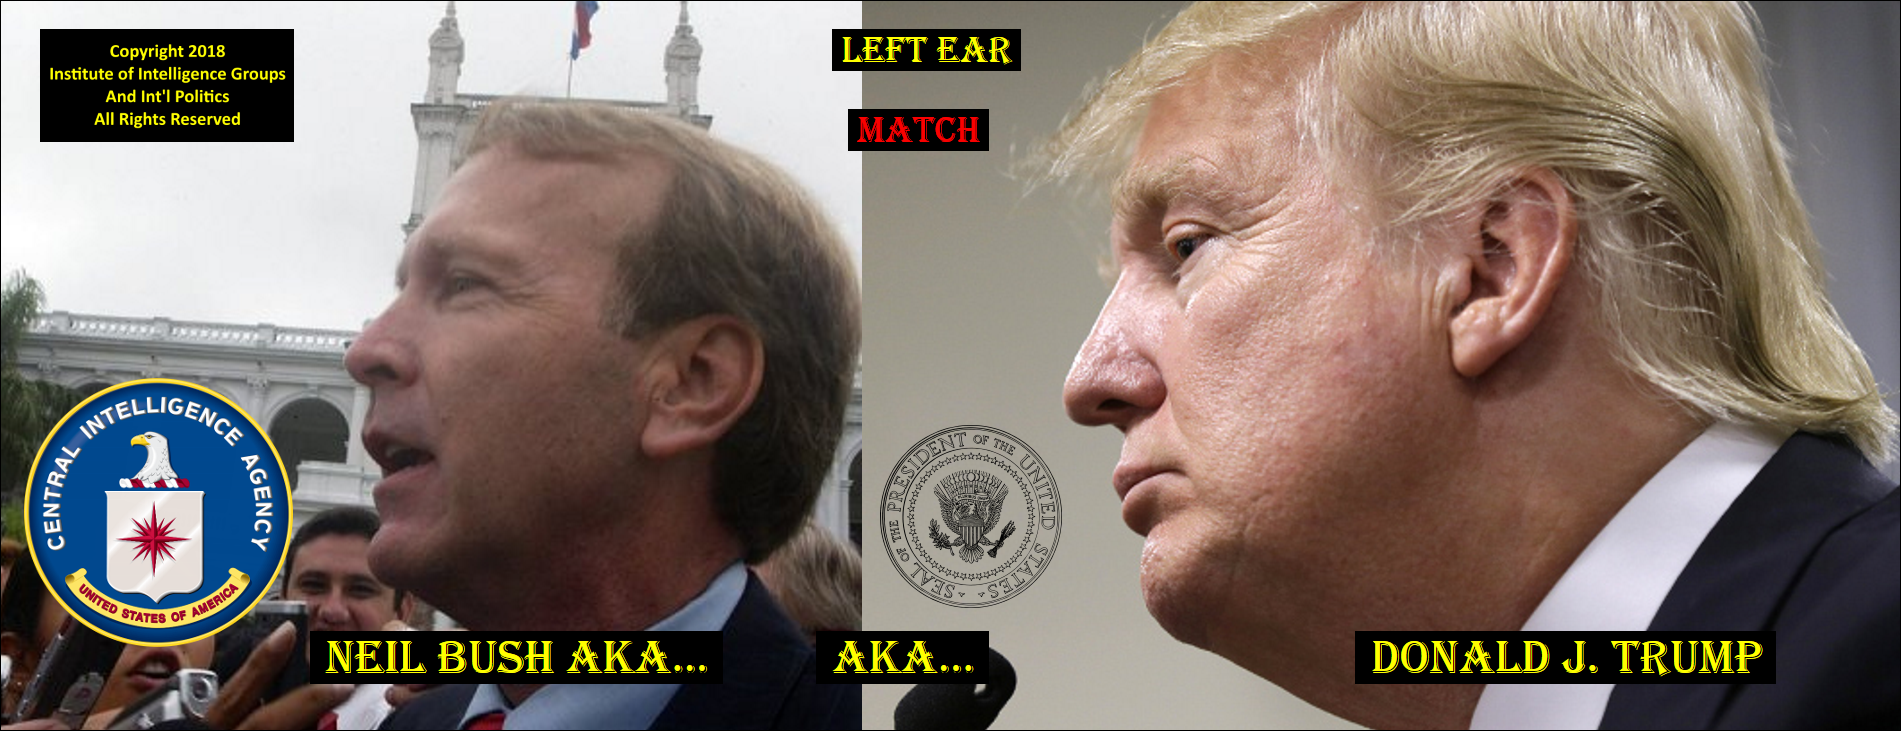 LEFT EAR COMPARISON NEIL BUSH